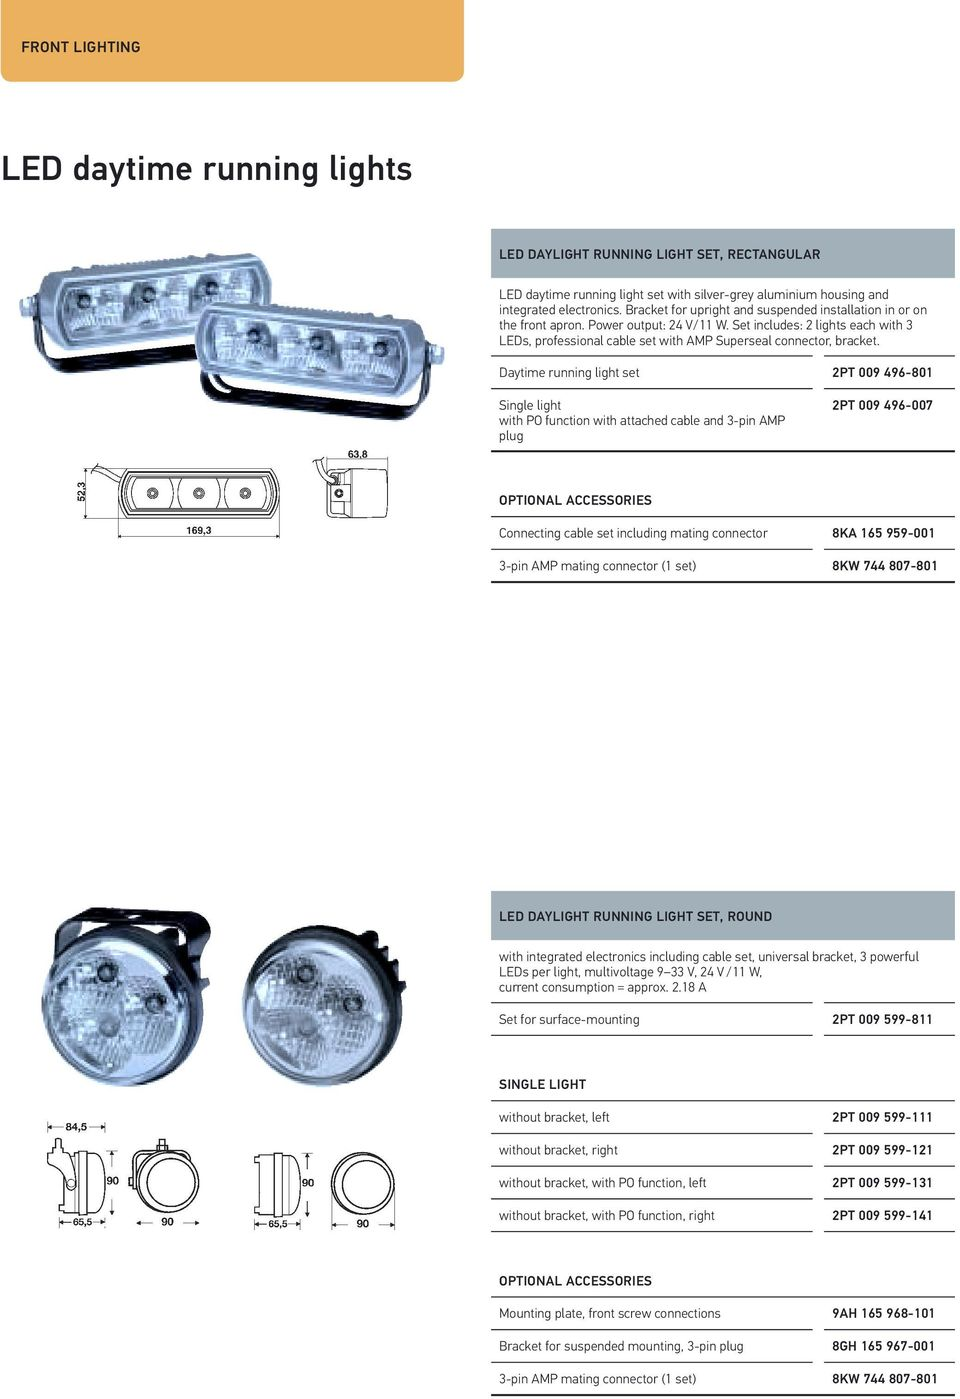 Daytime running light set 2PT 009 496-801 Single light with PO function with attached cable and 3-pin AMP plug 2PT 009 496-007 OPTIONAL ACCESSORIES Connecting cable set including mating connector 8KA